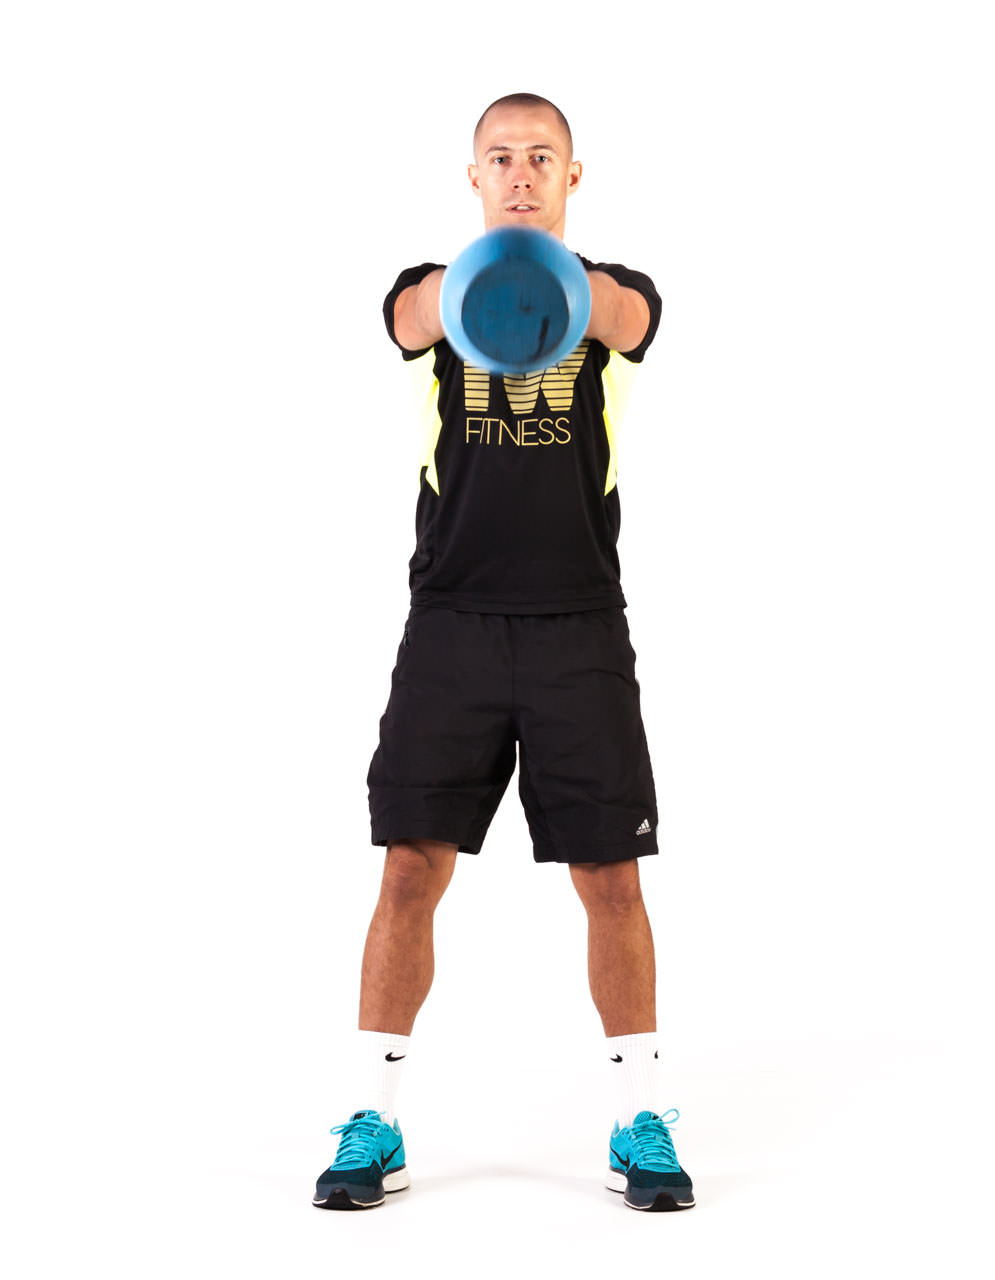 Two-Arm Kettlebell Swing frame #3